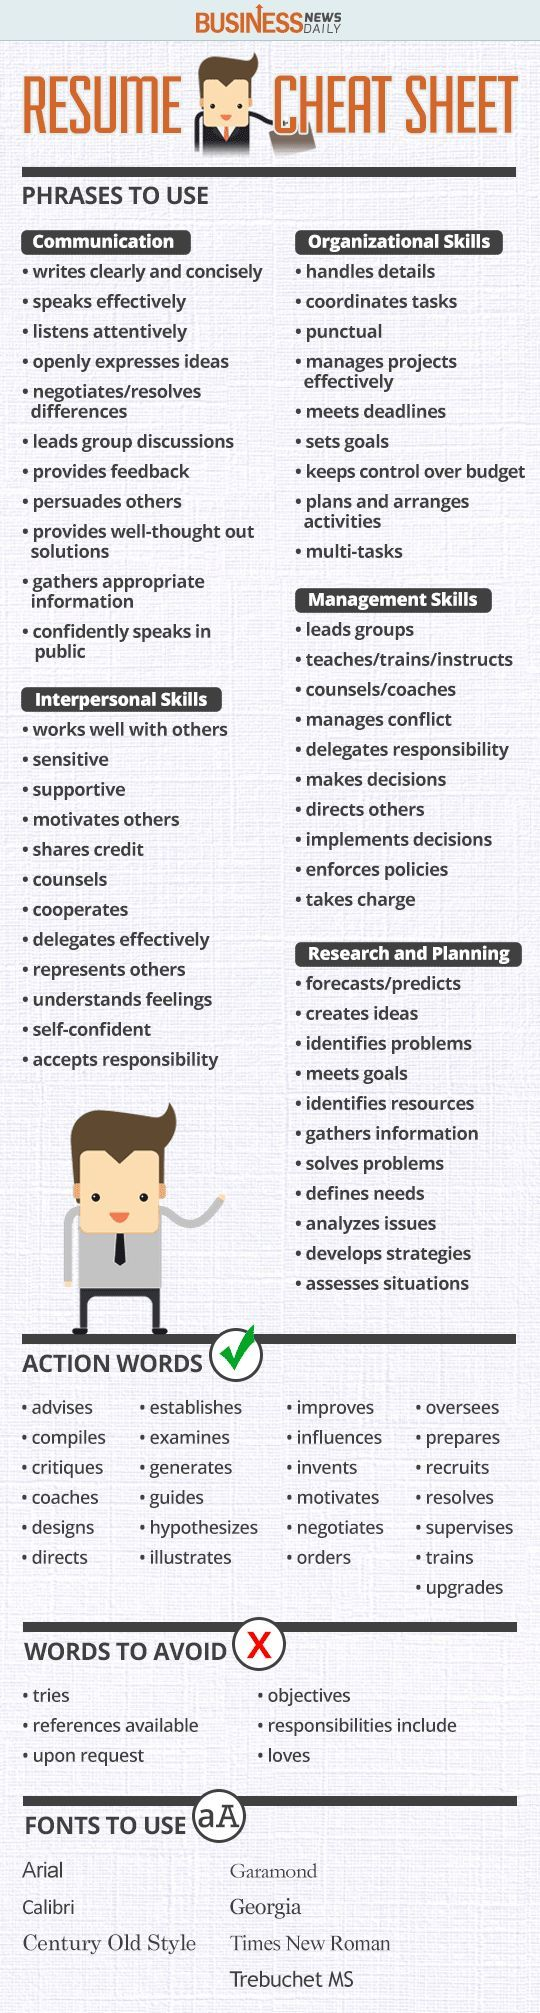 tips for a #job search #careers #resumes